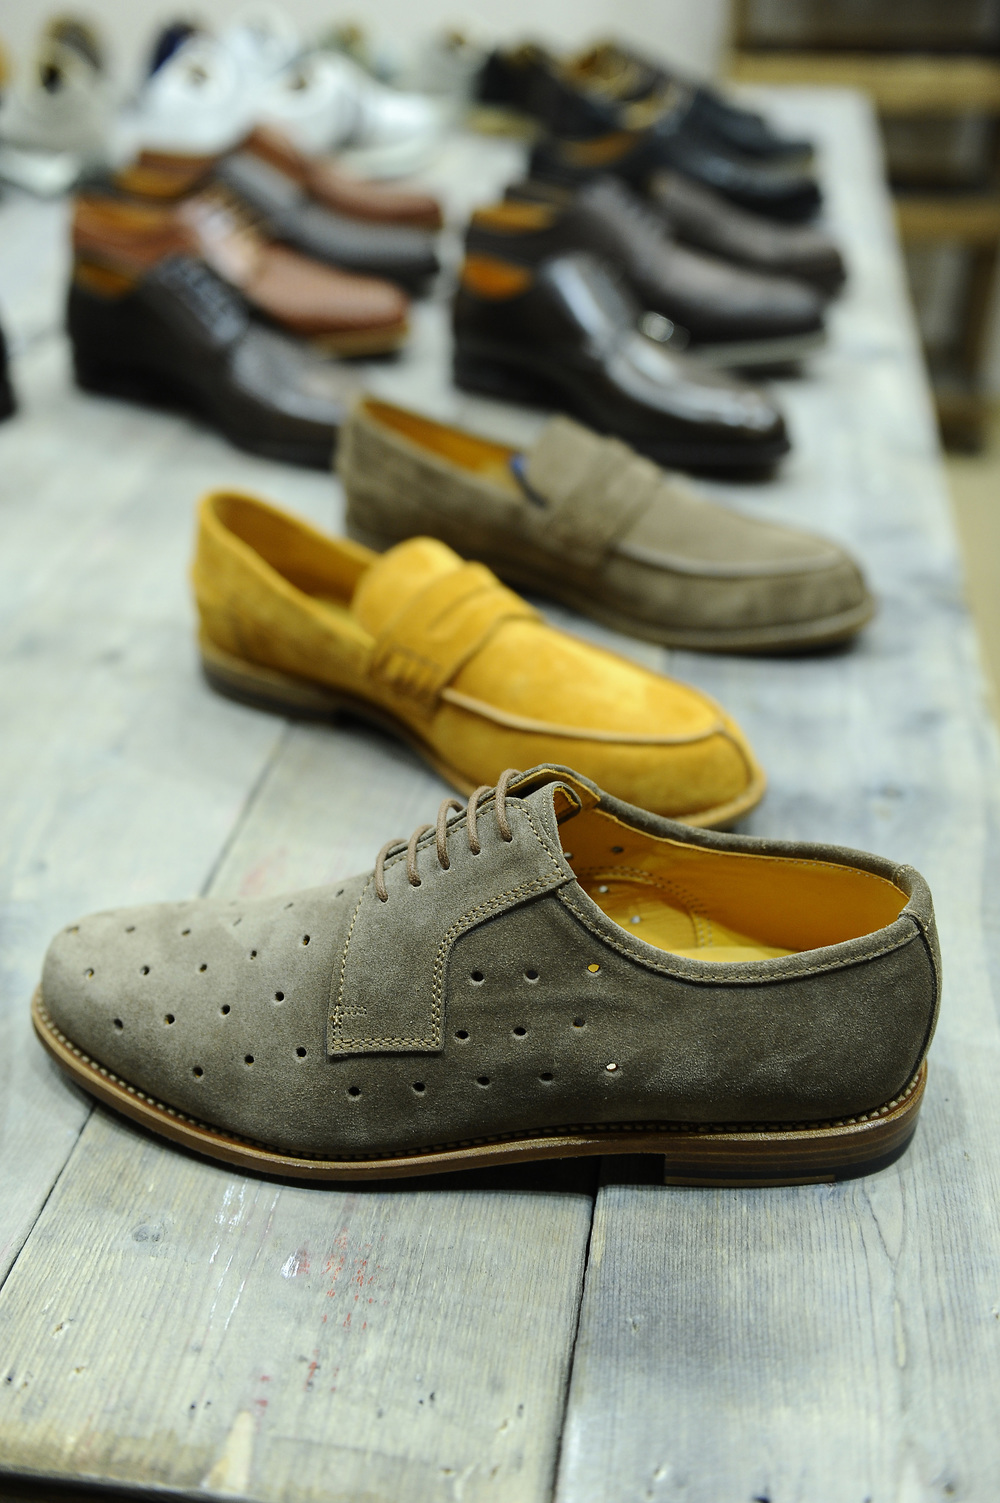 Perforated suede derby shoes by LUDWIG REITER